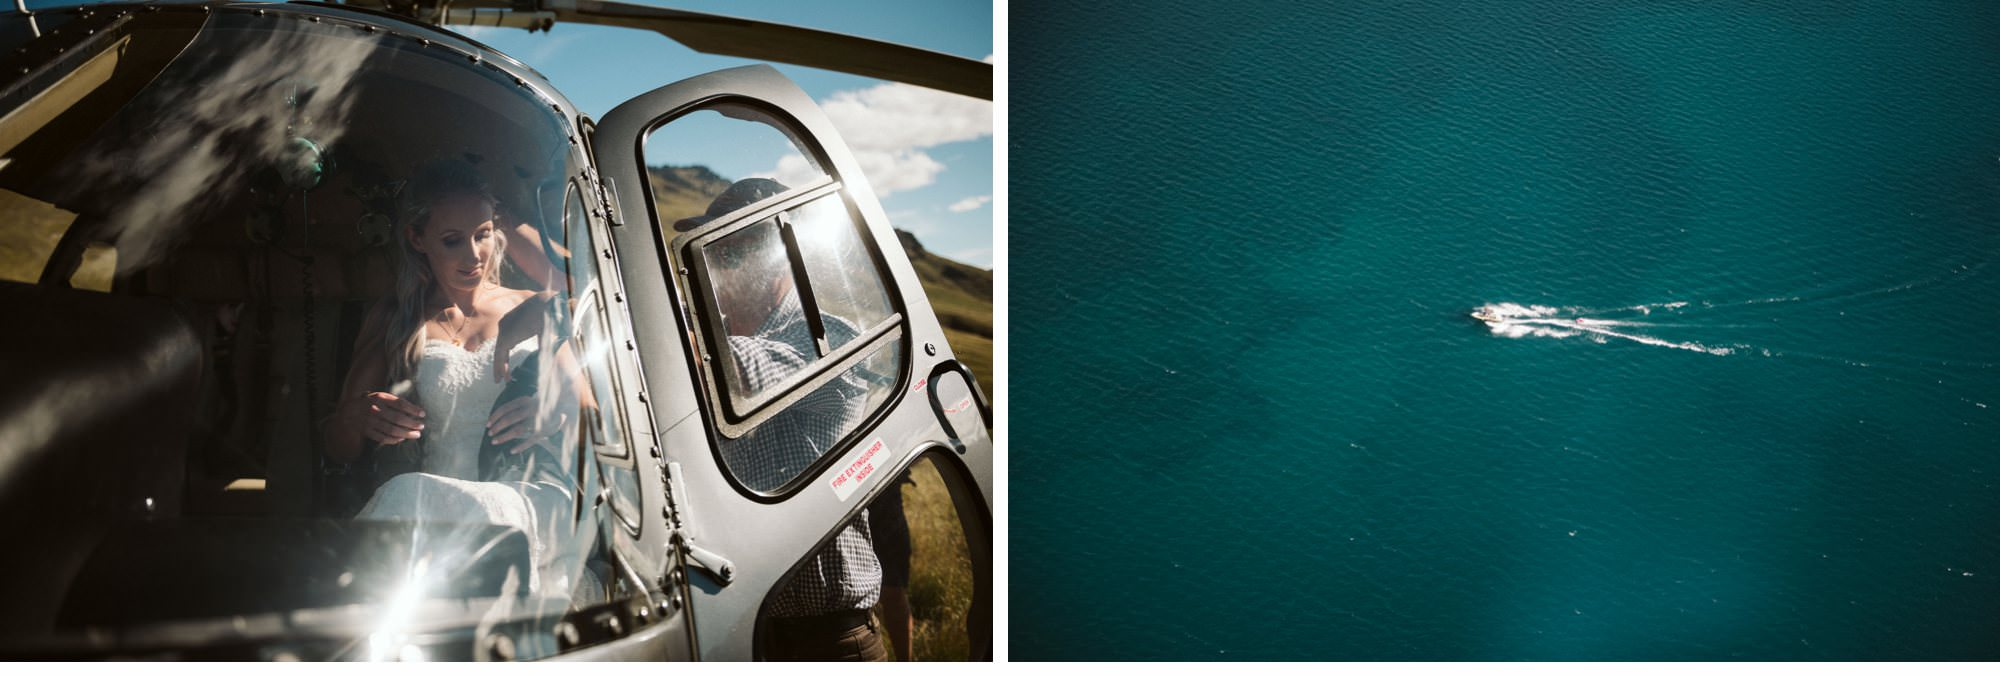 Queenstown Heli Elopement Photographer-025.jpg